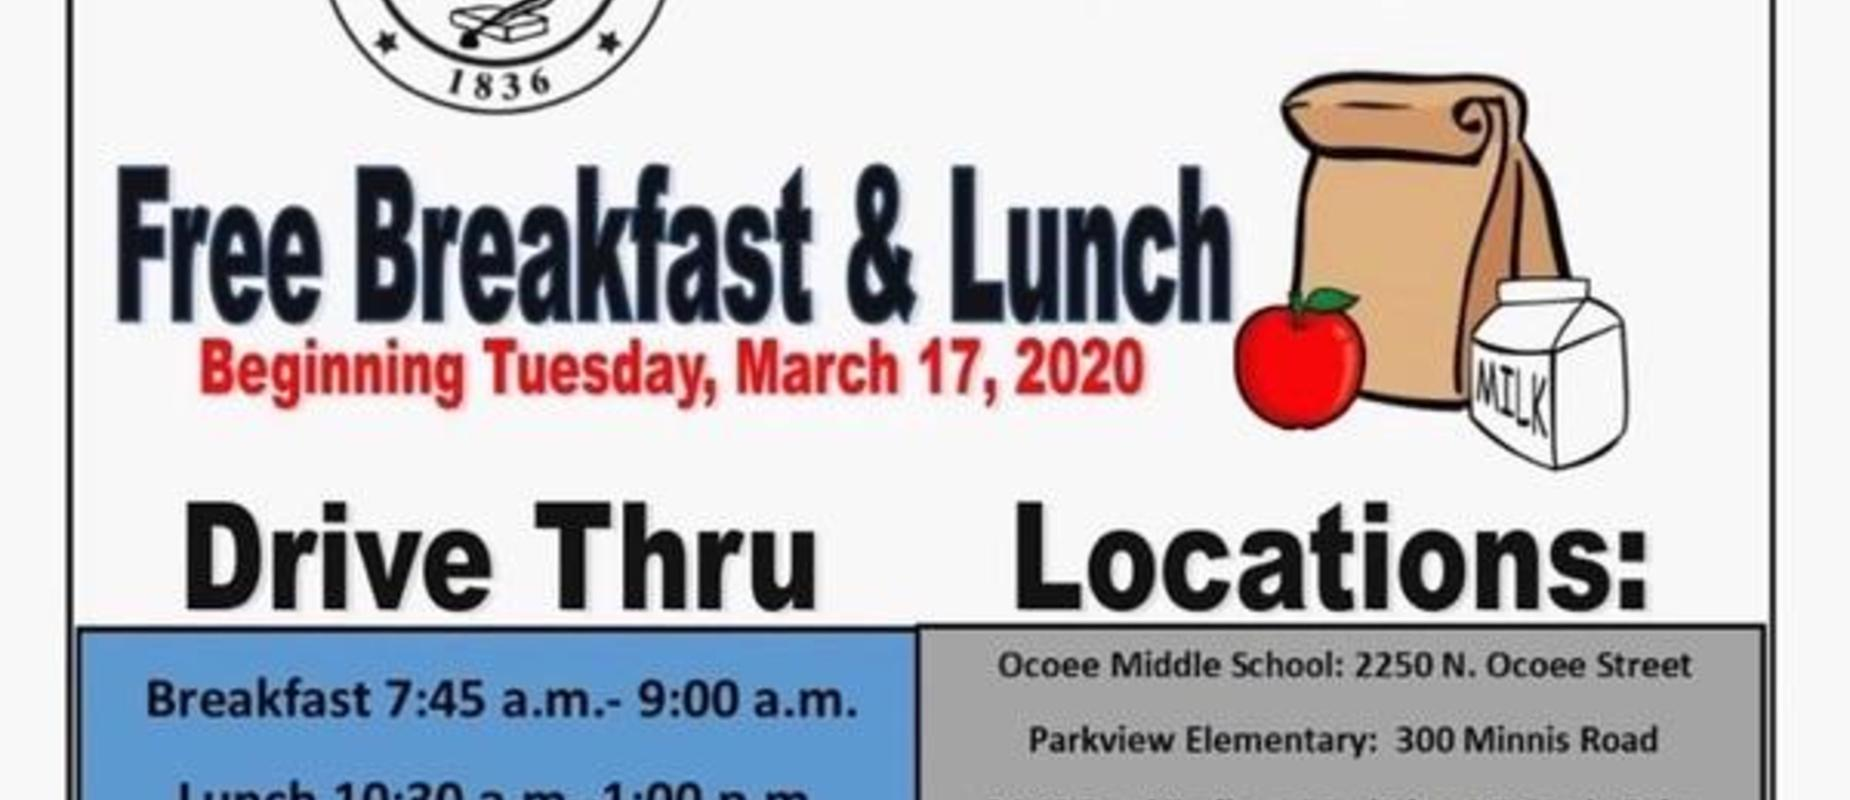 Information Regarding Free Breakfast & Lunch